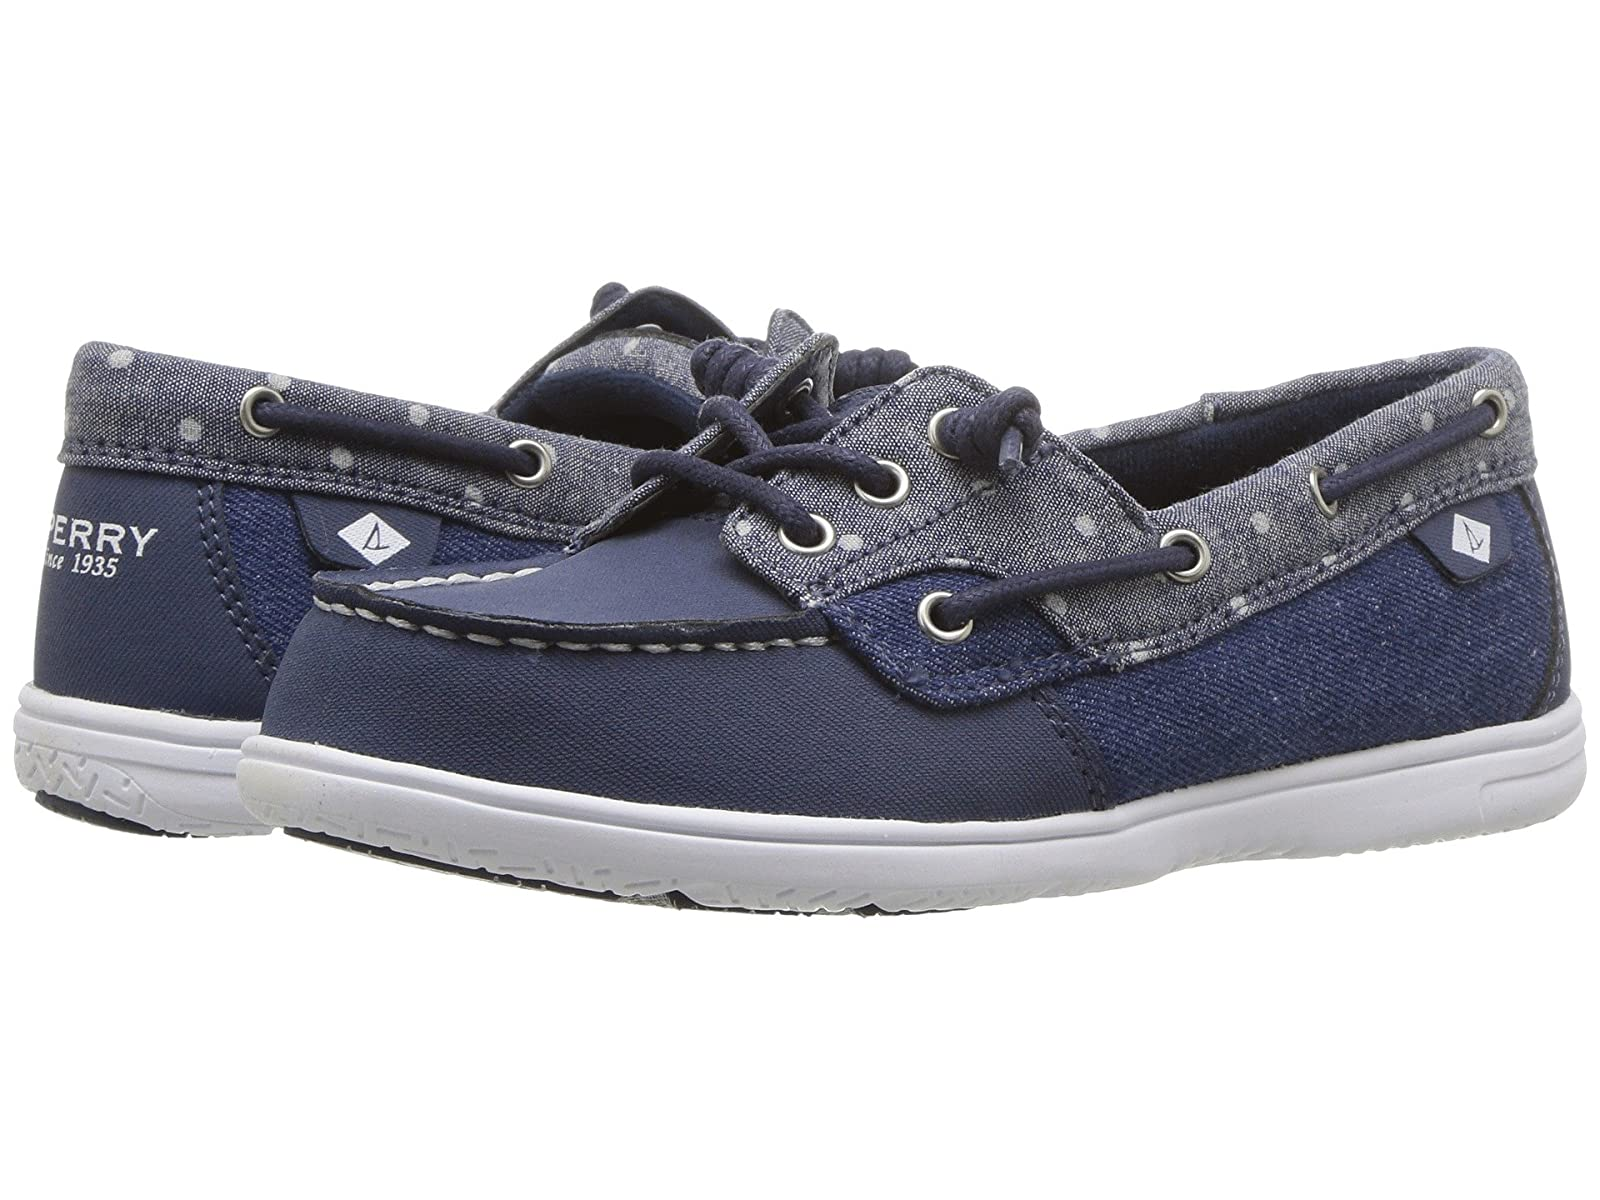 Sperry Kids Shoresider 3-Eye (Little Kid/Big Kid)Cheap and distinctive eye-catching shoes